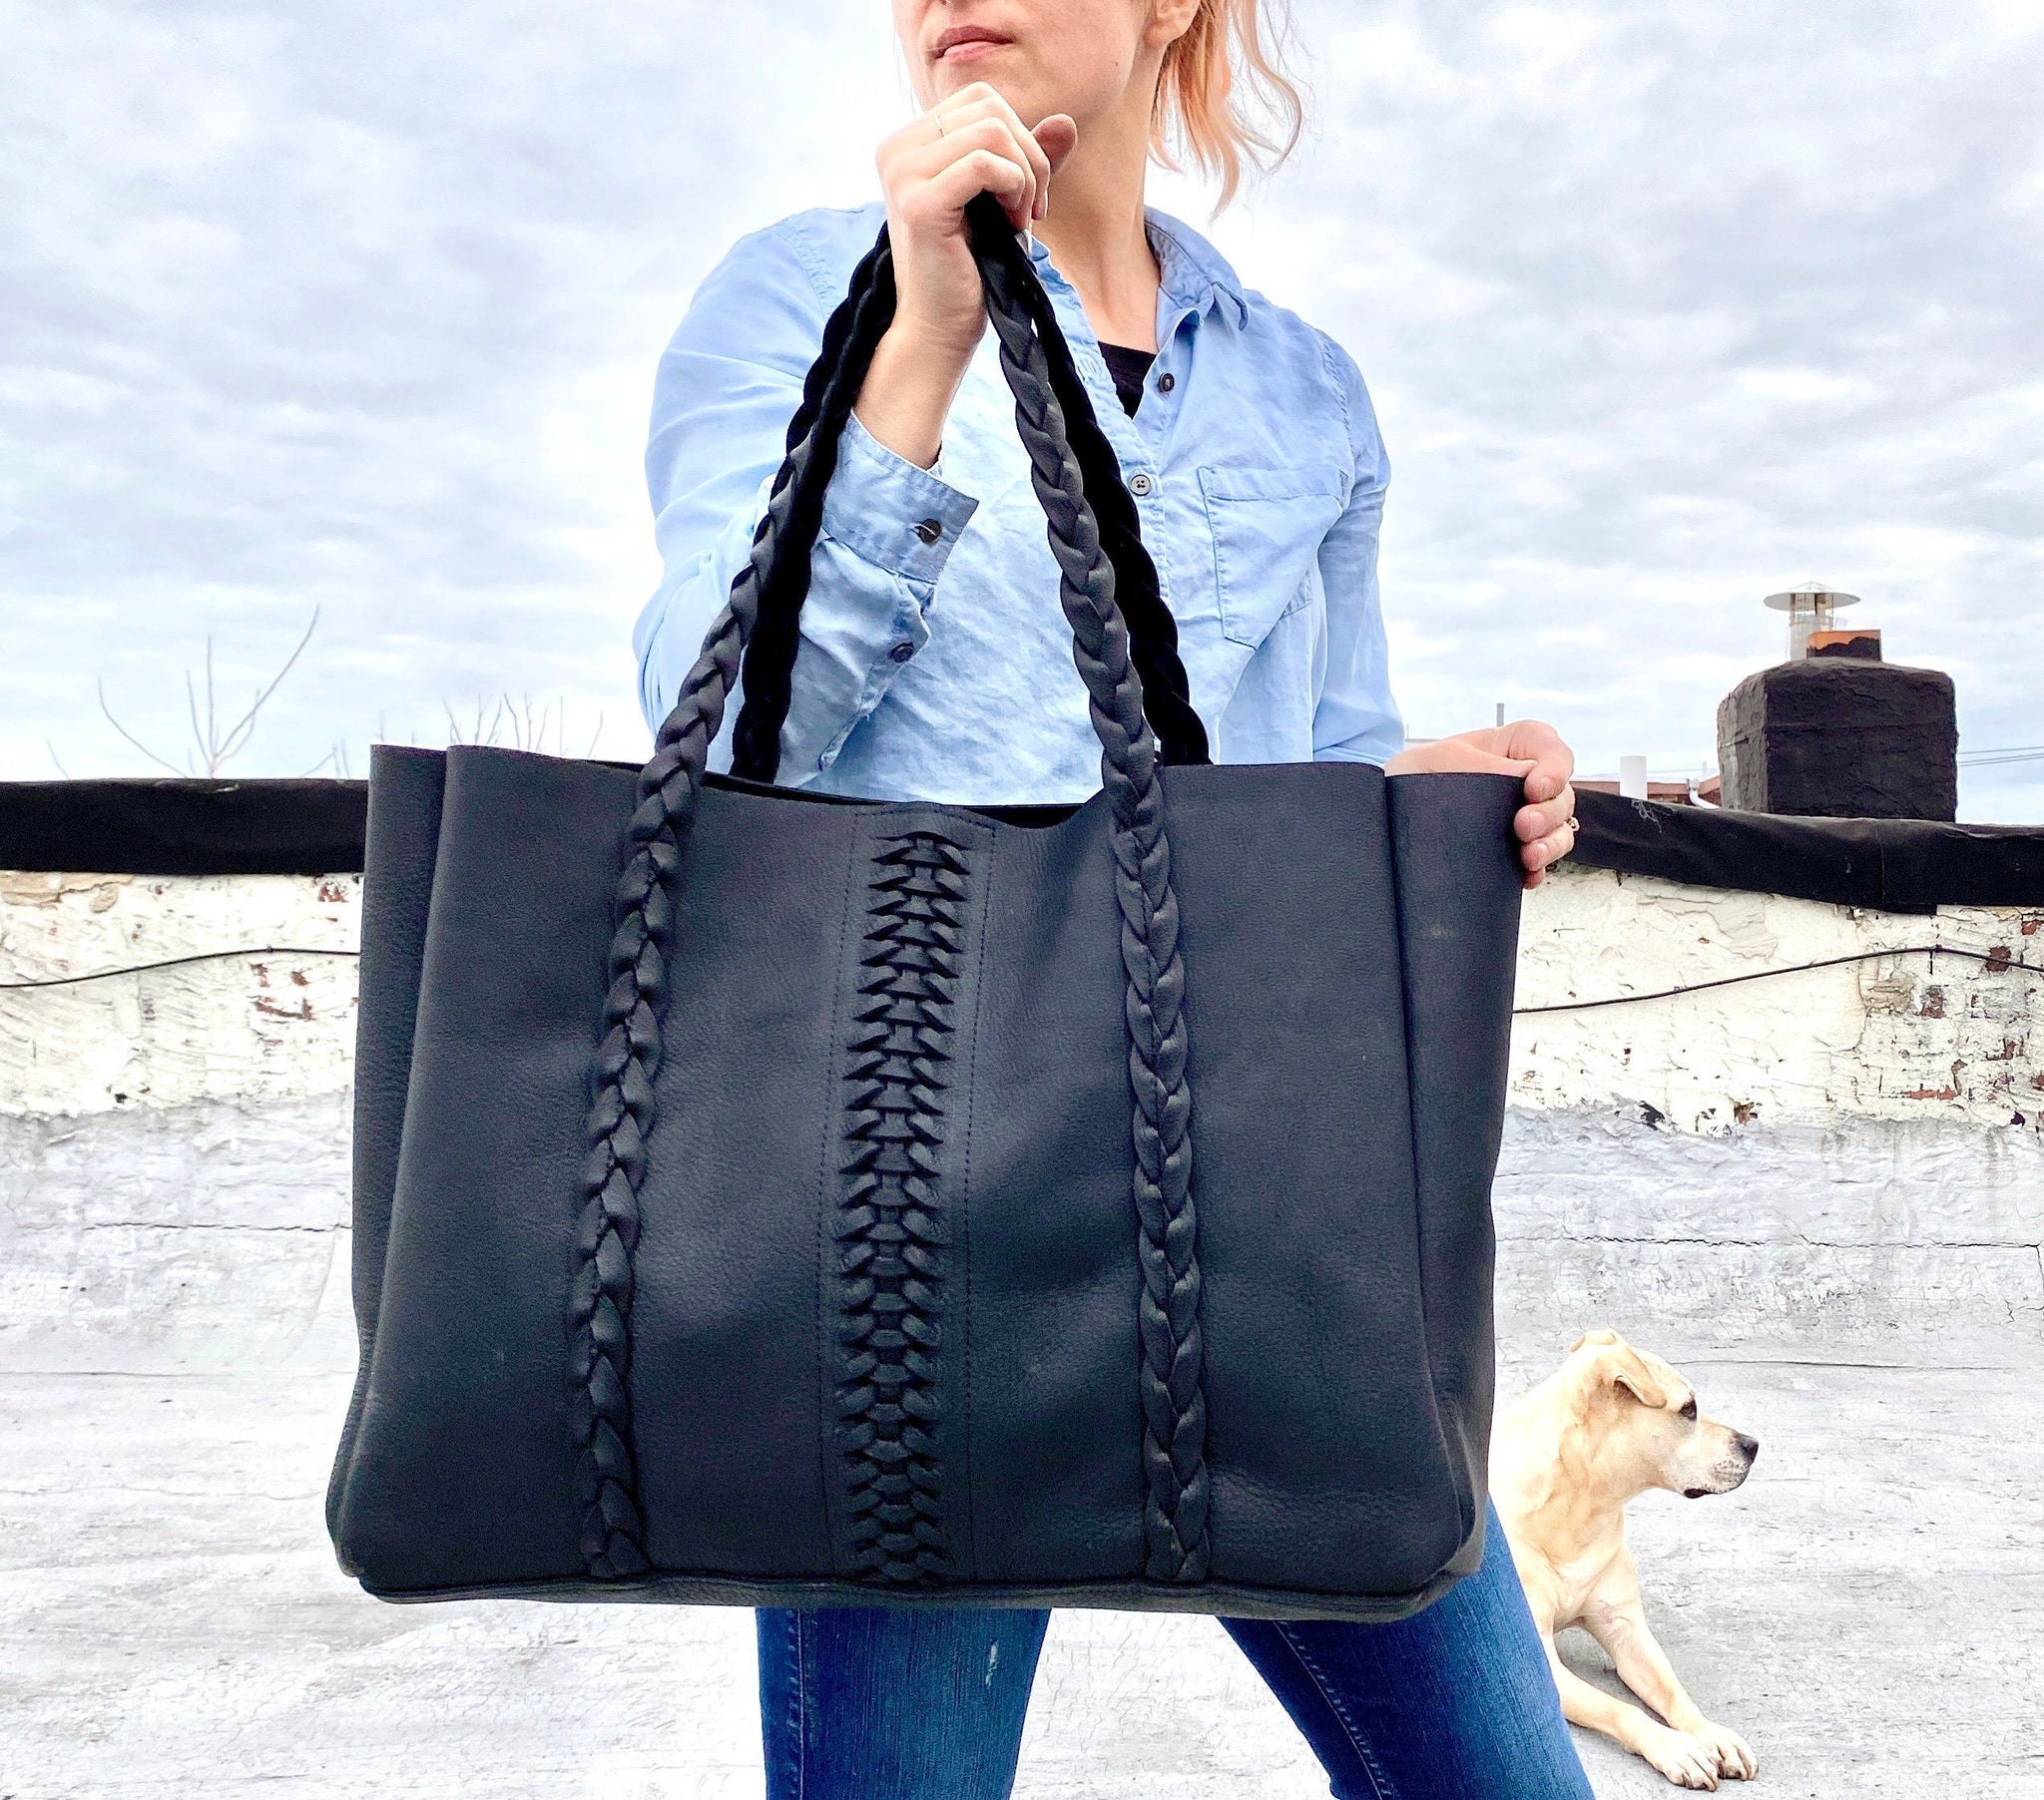 Oversized boho chic black leather tote with braids, Sturdy Work and travel leather bag